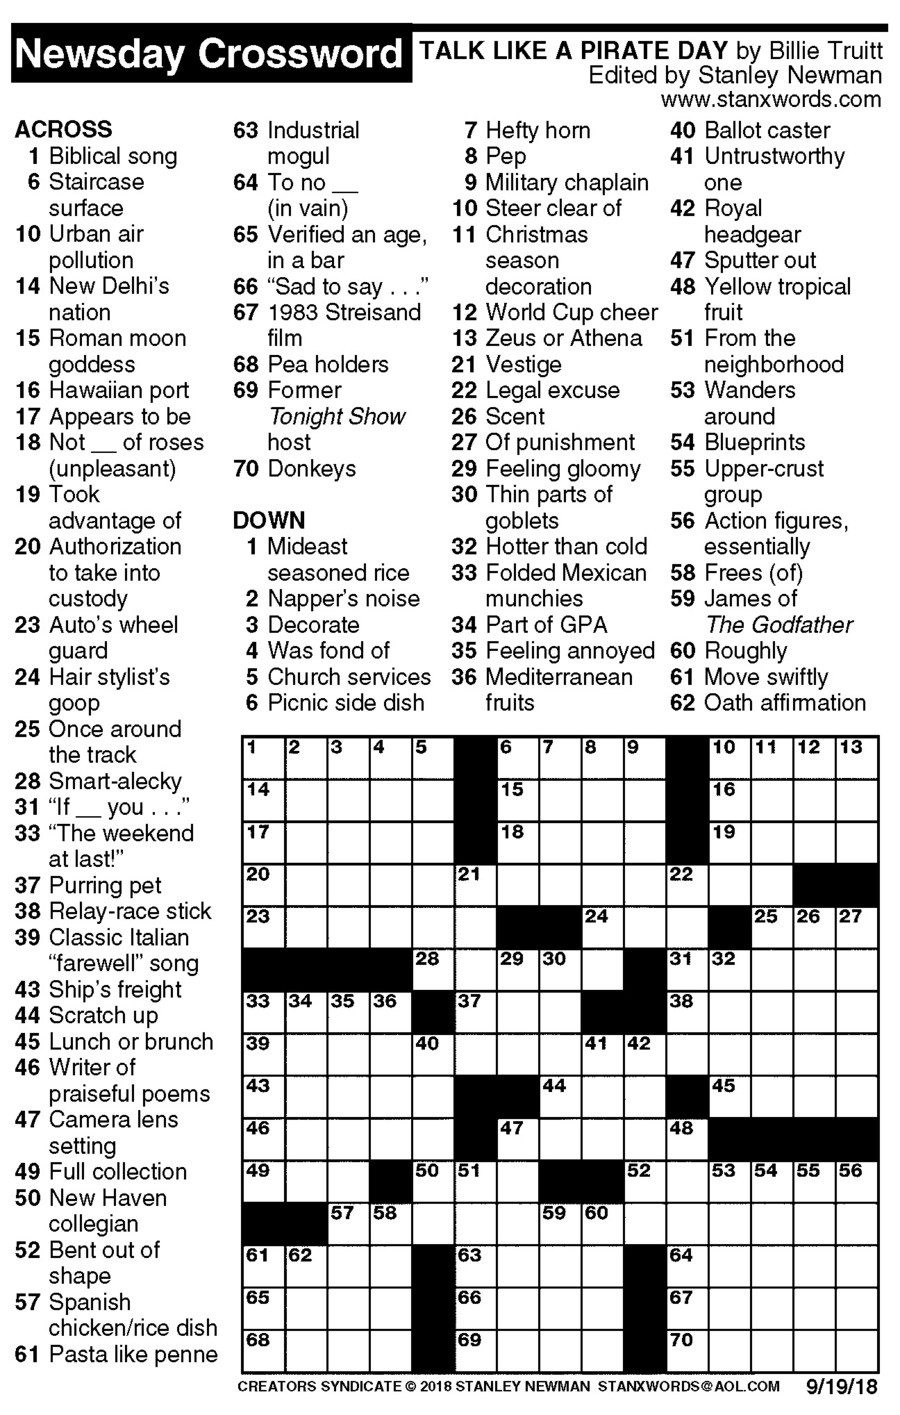 Newsday Crossword Puzzle for Sep 19, 2018